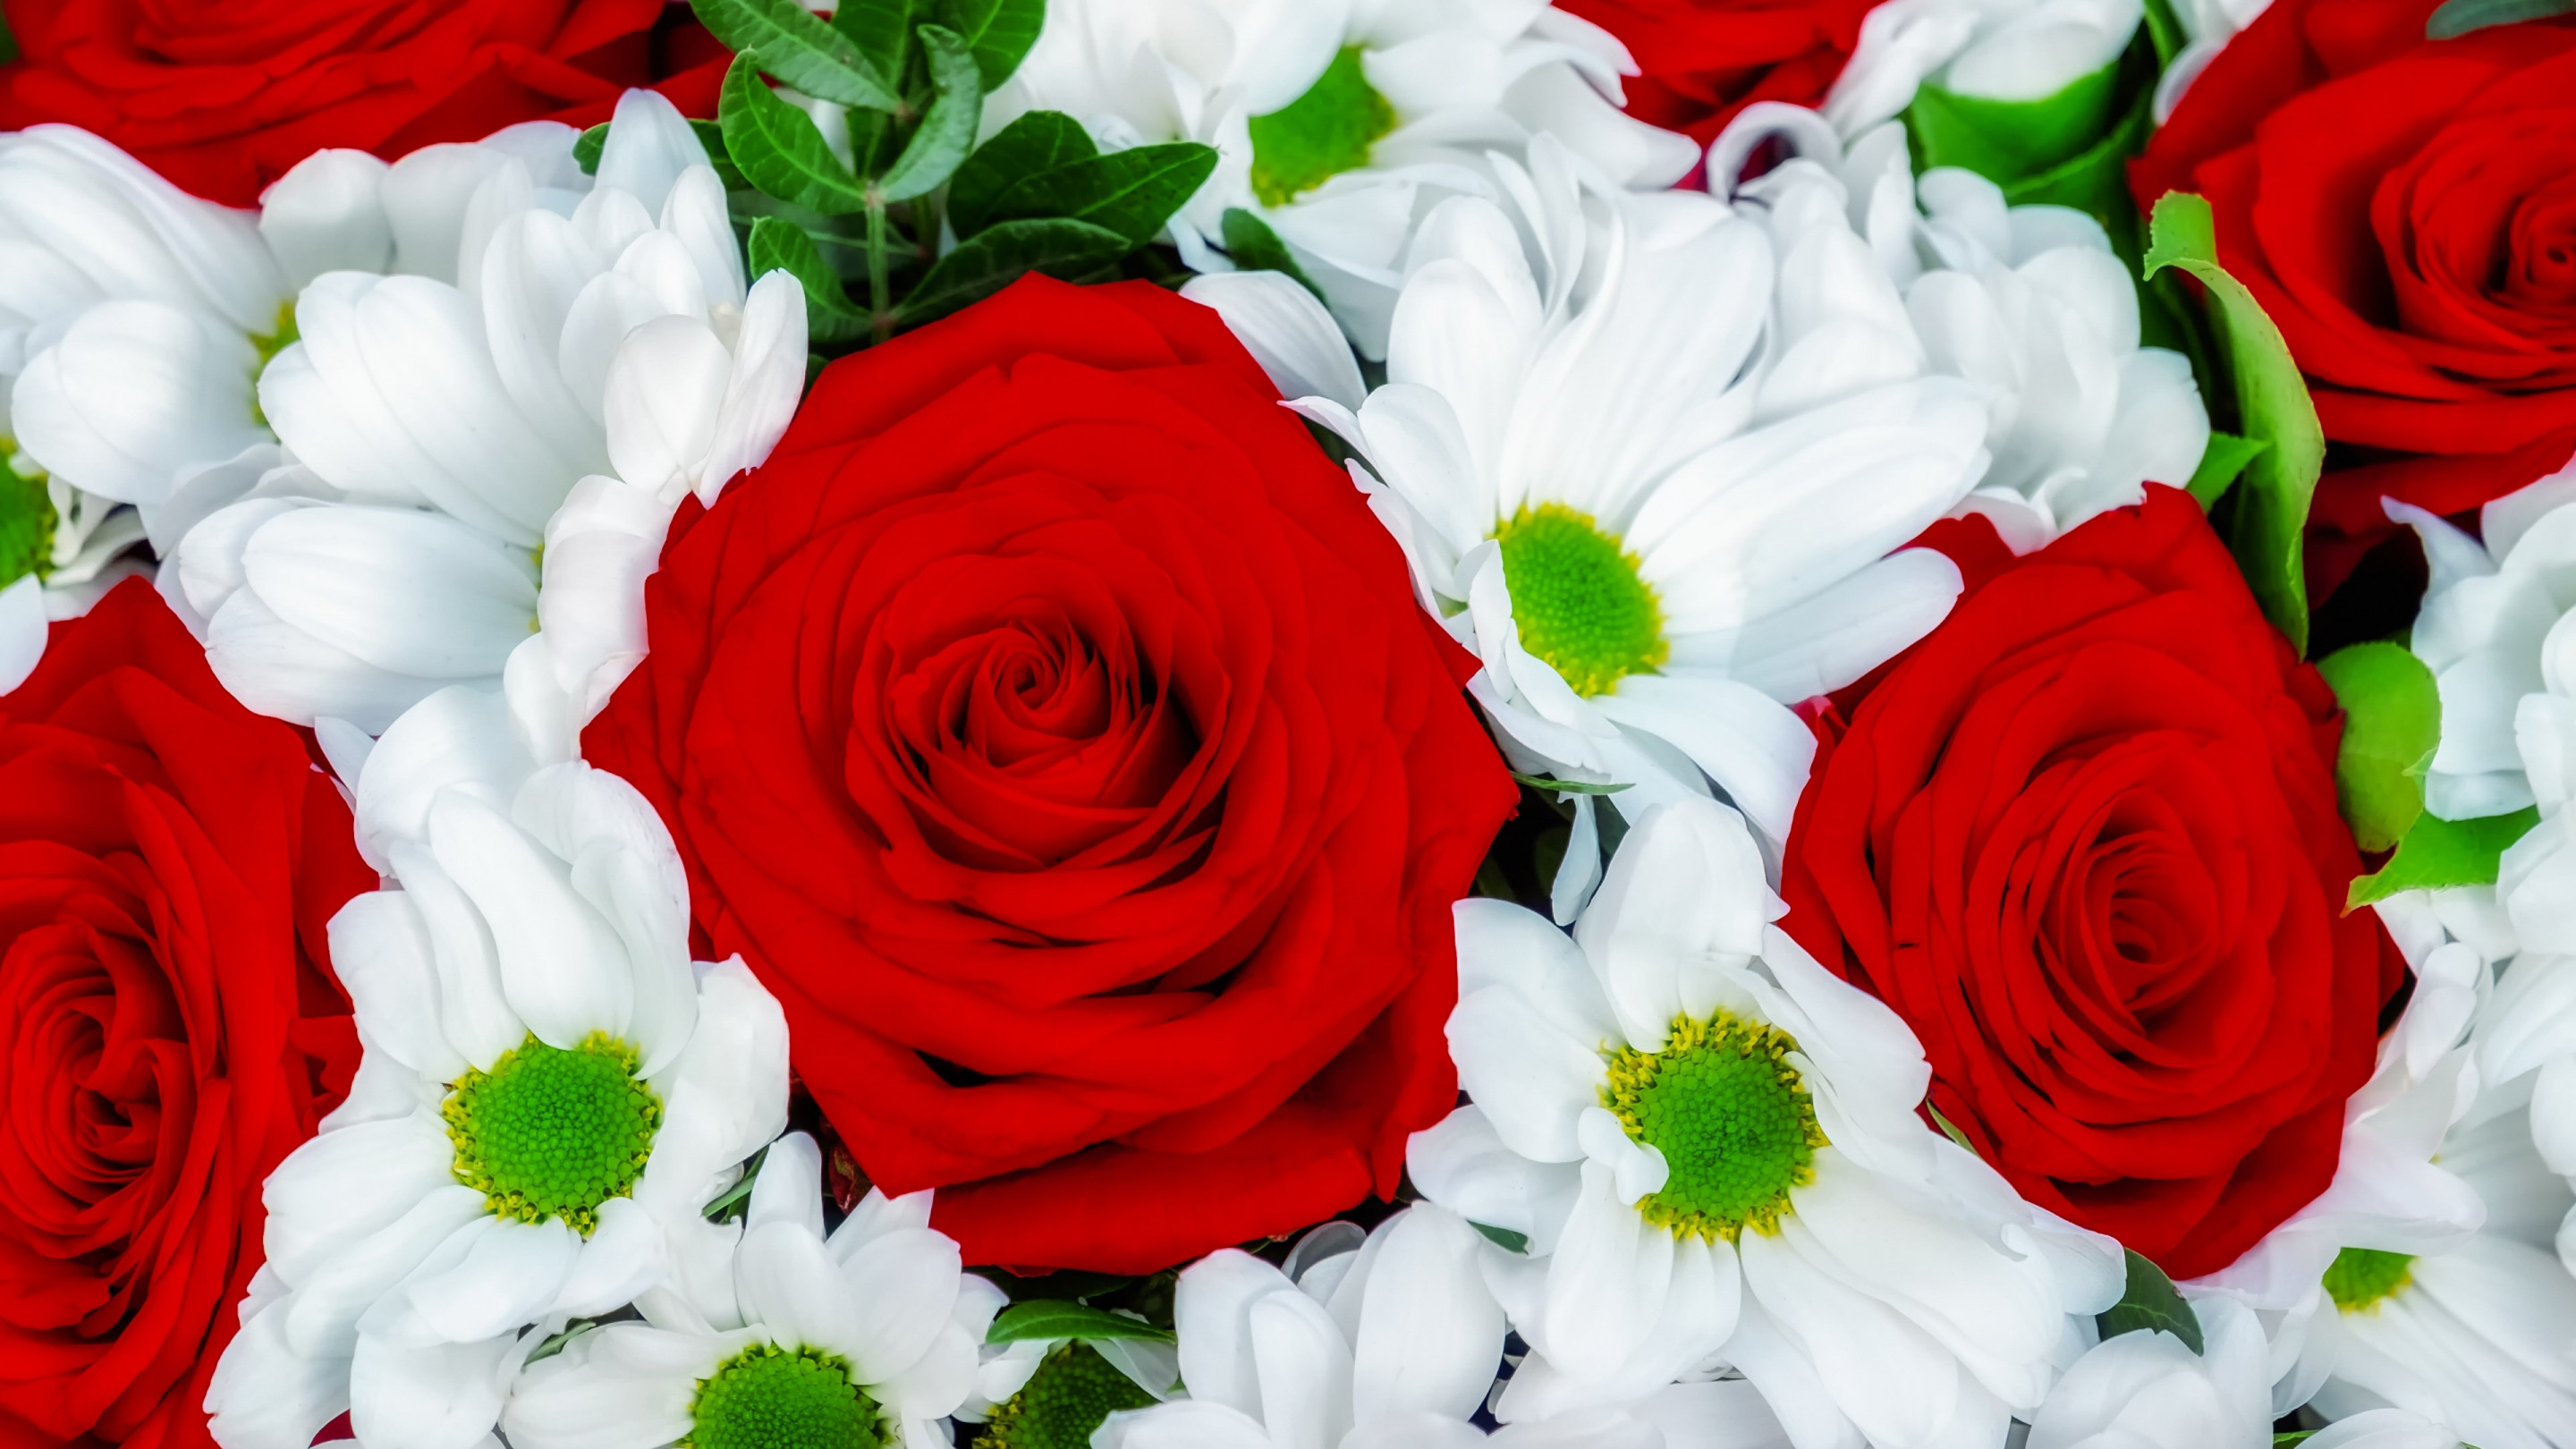 Roses and daisies bouquet wallpaper 2880x1620